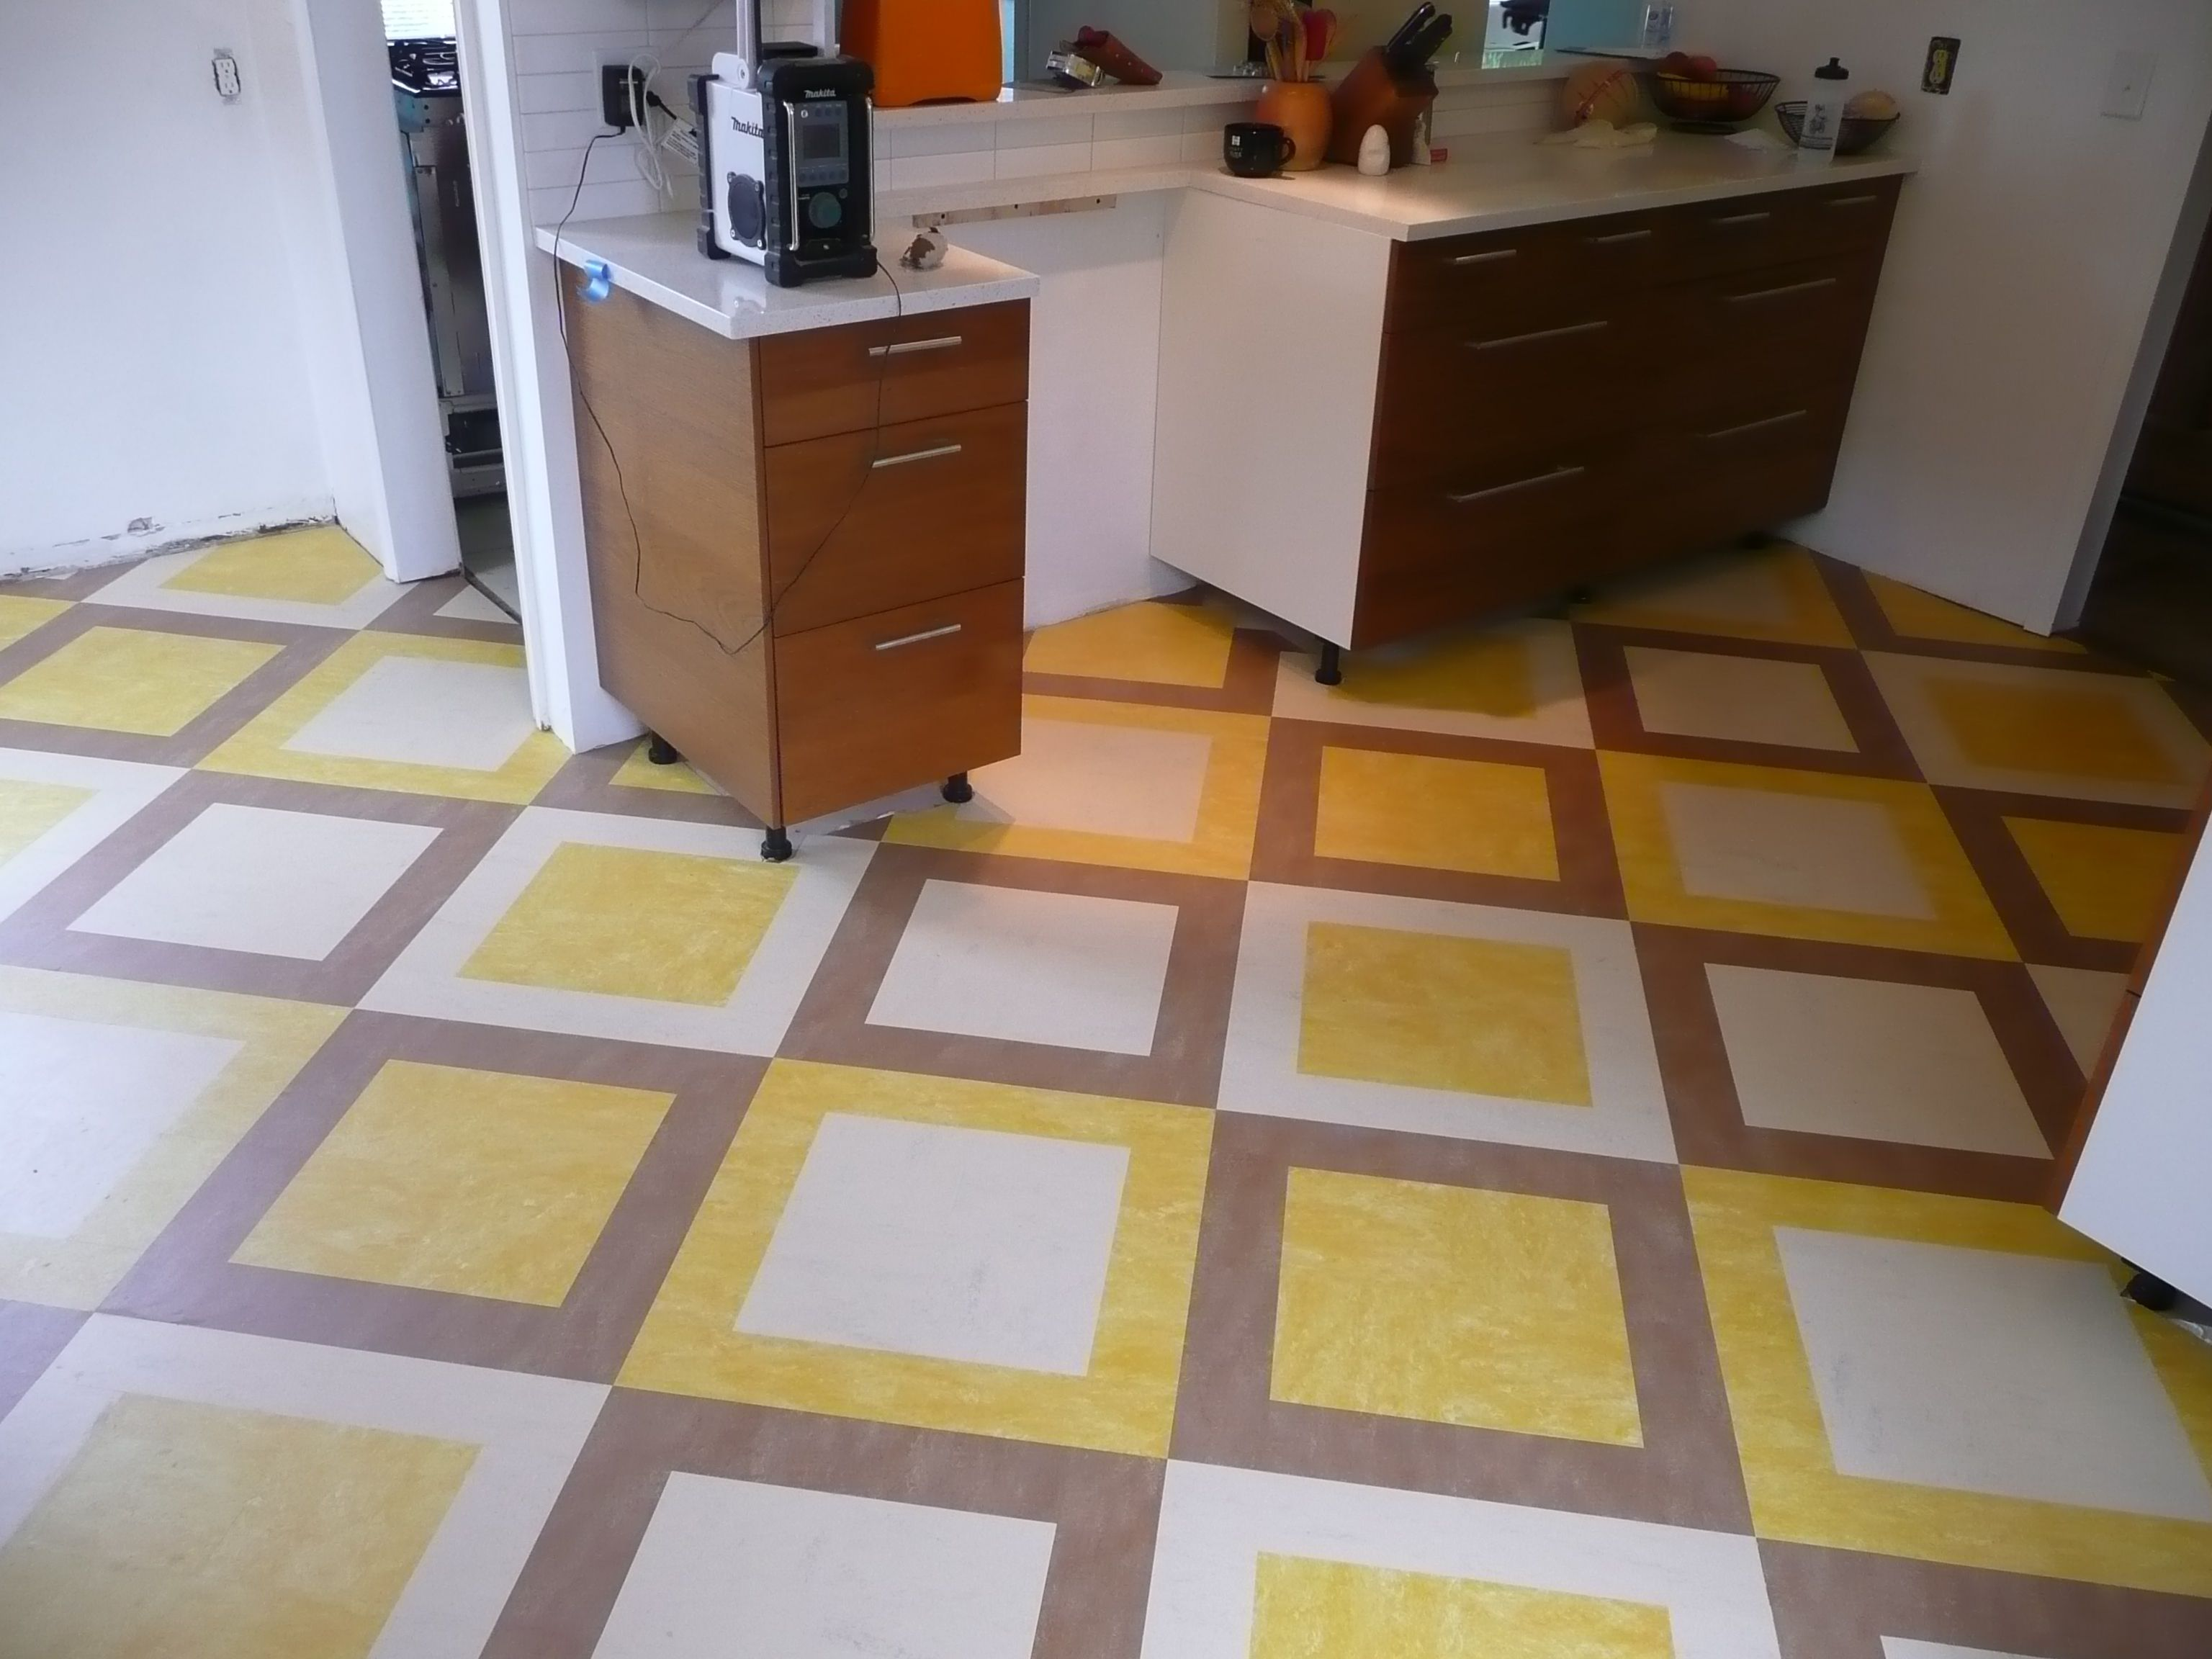 Checkerboard Kitchen Floor 1950 Linoleum Patterns This Would Be Time Consuming But You